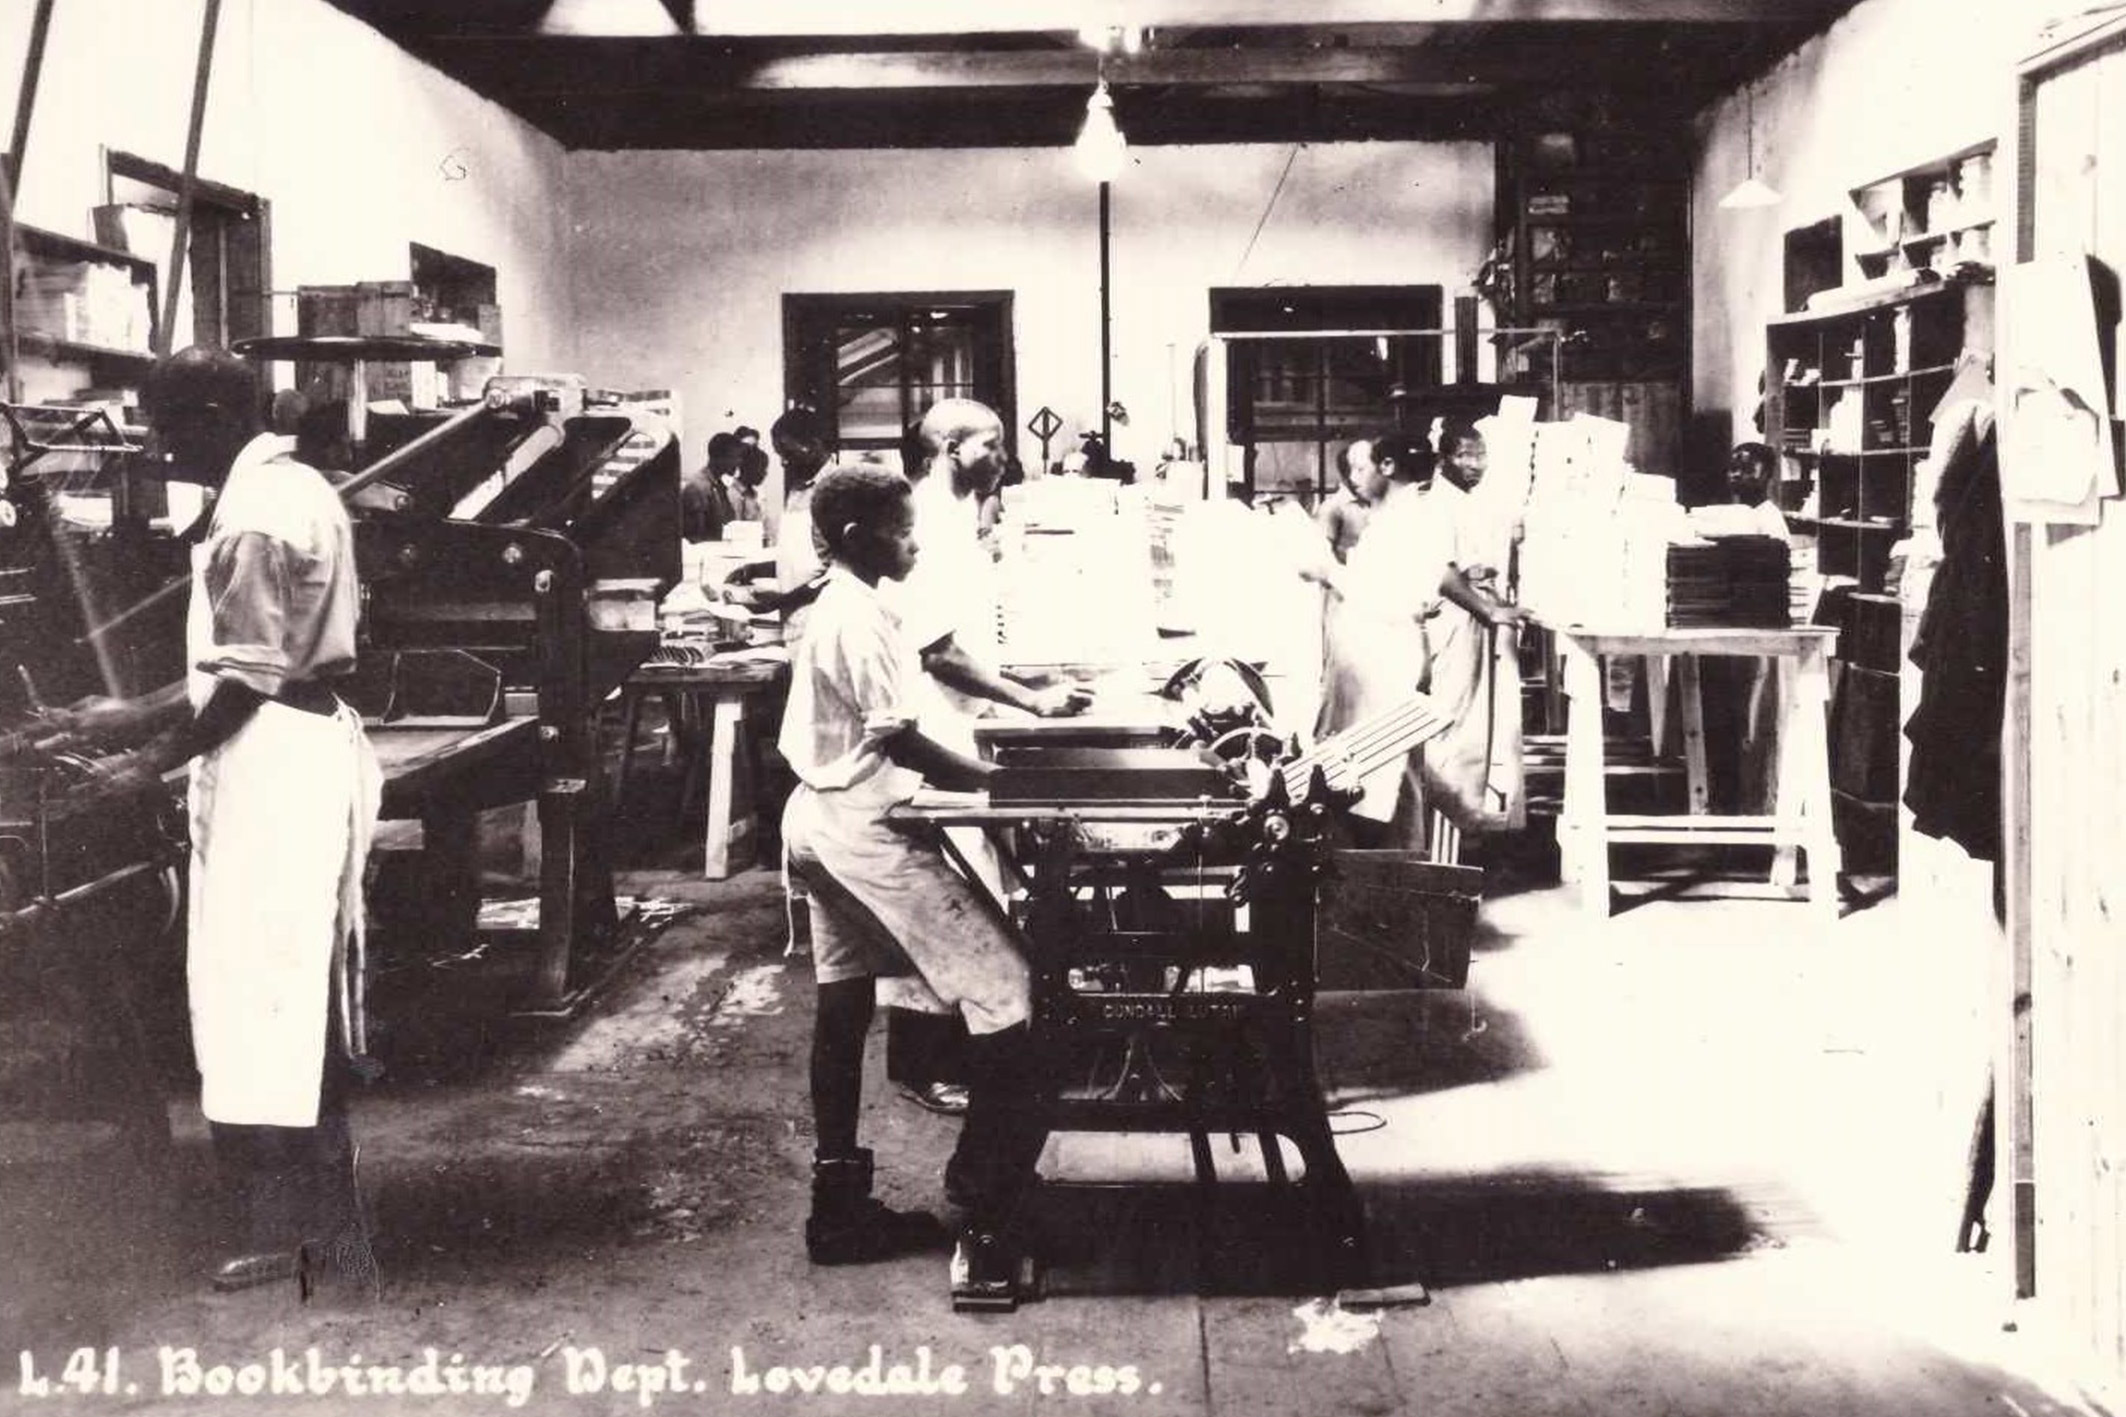 Undated: Lovedale Press continued to train and employ black people during apartheid, championing the creation of a class of black printers and bookbinders. (Image courtesy of Amathole Museum, King William's Town)